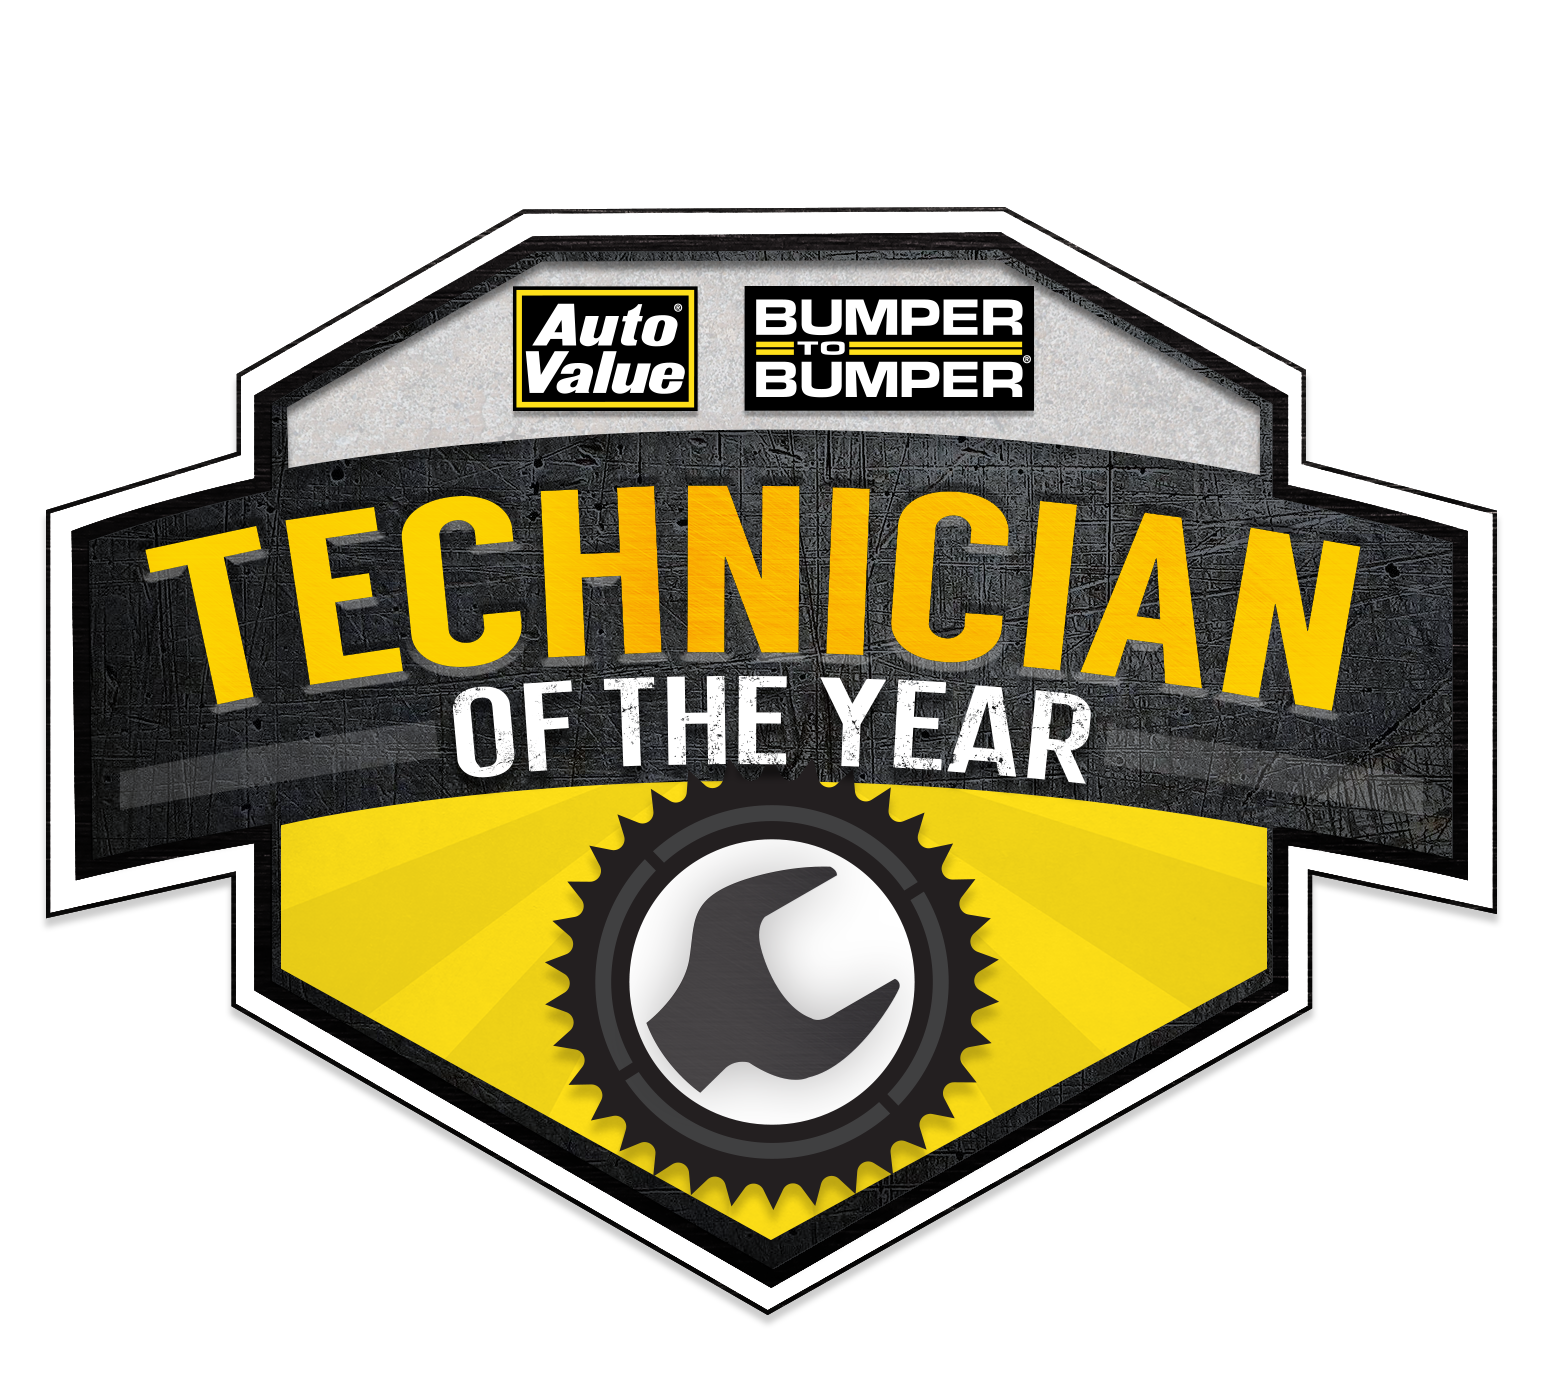 Technician of the Year